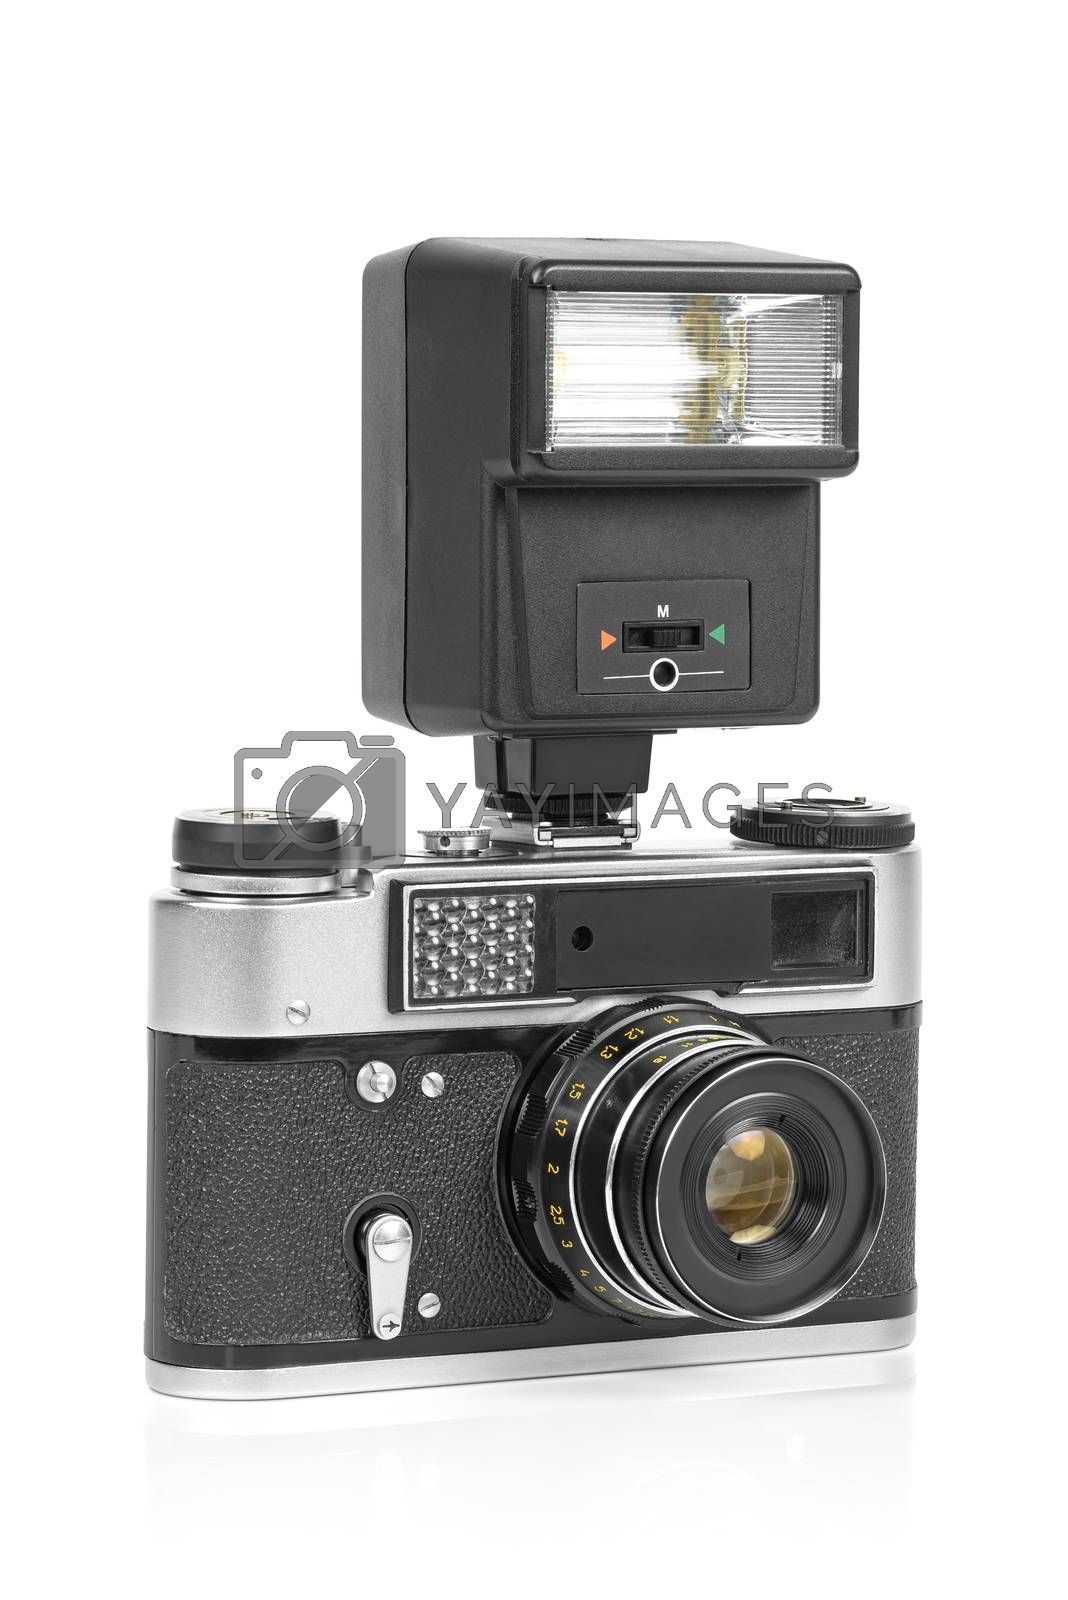 Royalty free image of Vintage analog camera with manual flash light by mkos83